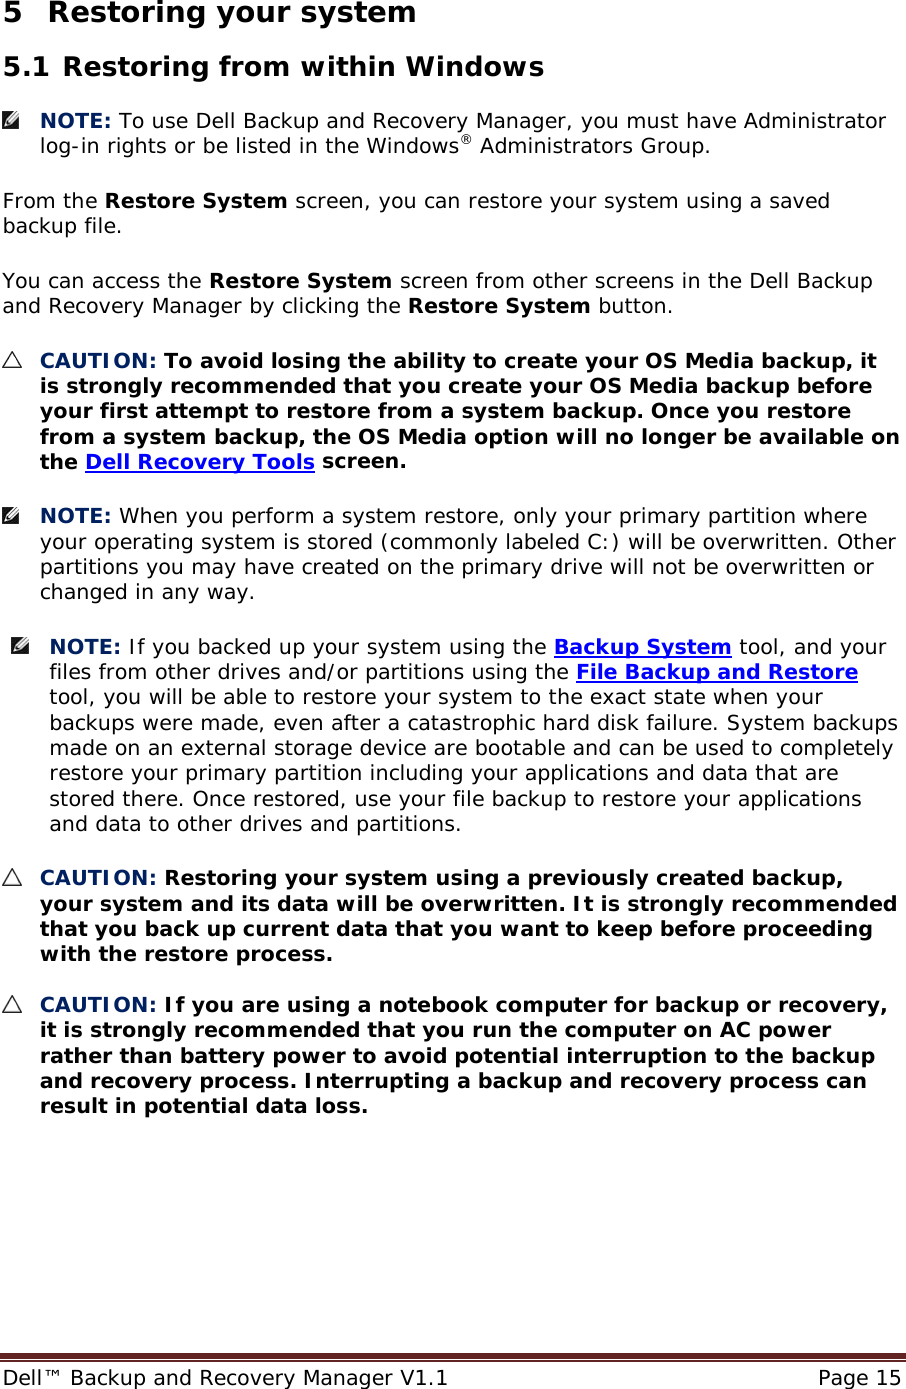 Dell bckup and recvry mangr v1 1 Backup Recovery Manager